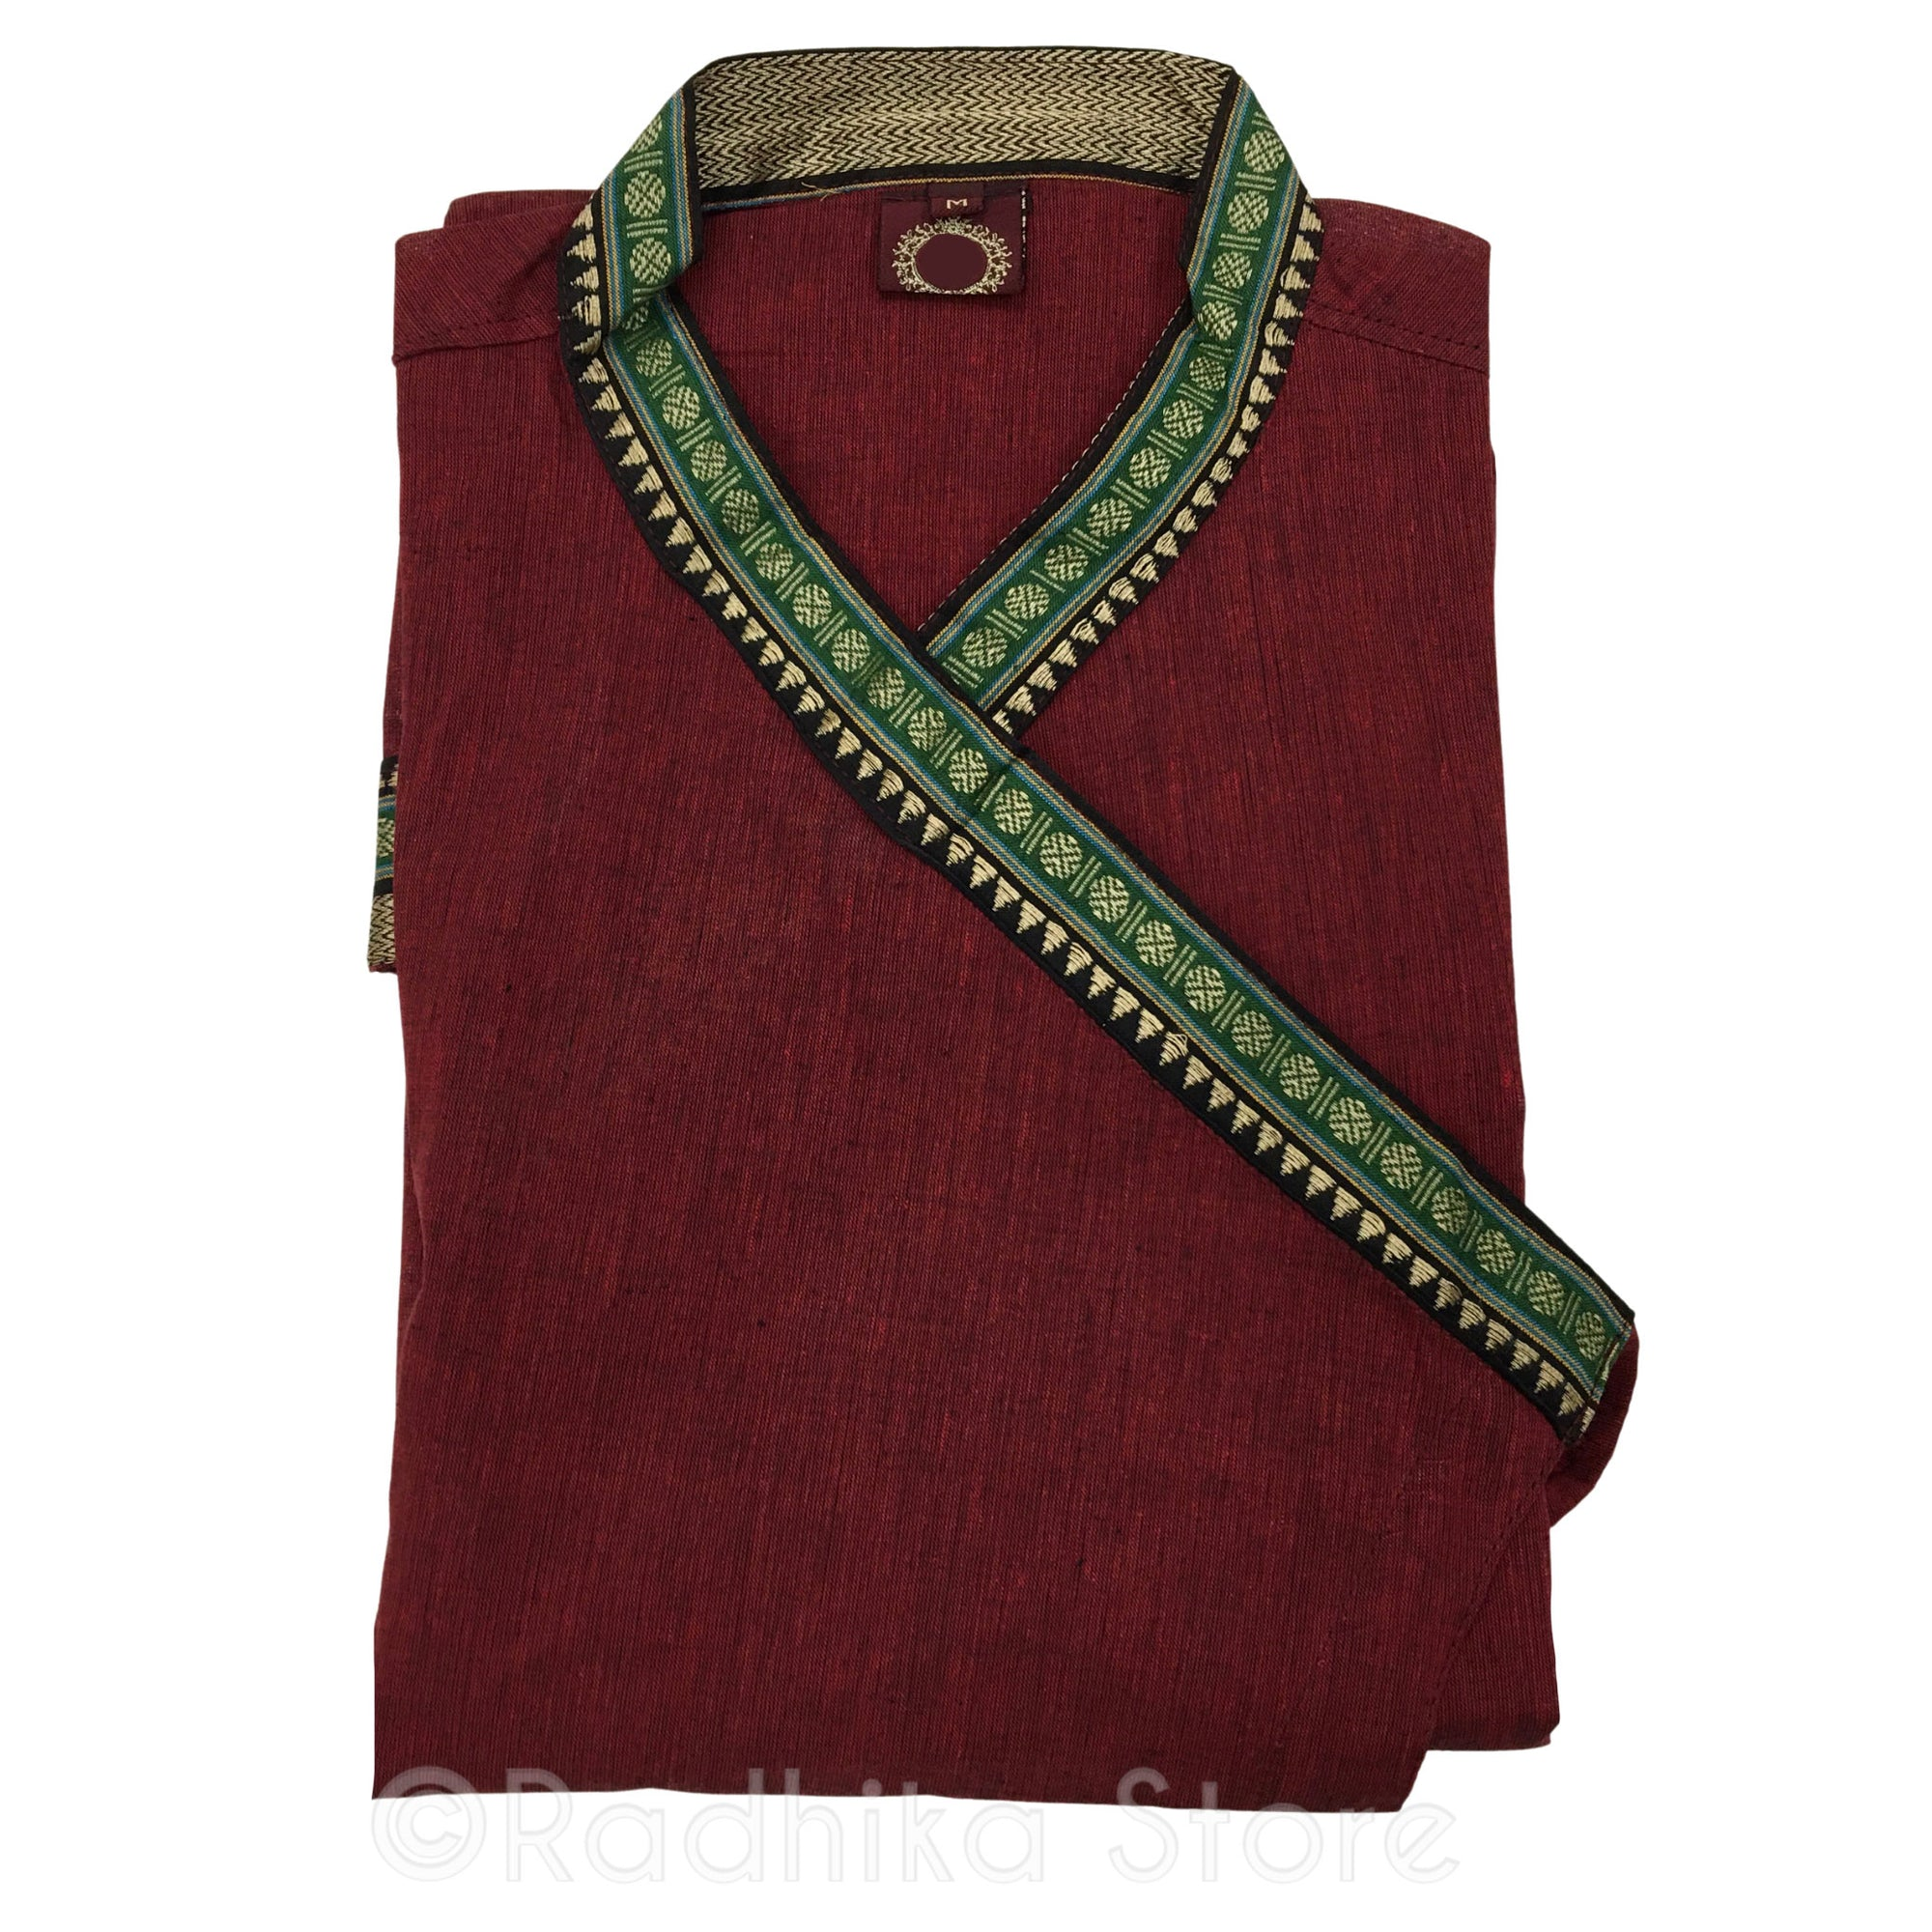 Maroon Festival Bundi Kurta - Cotton - Short Sleeve